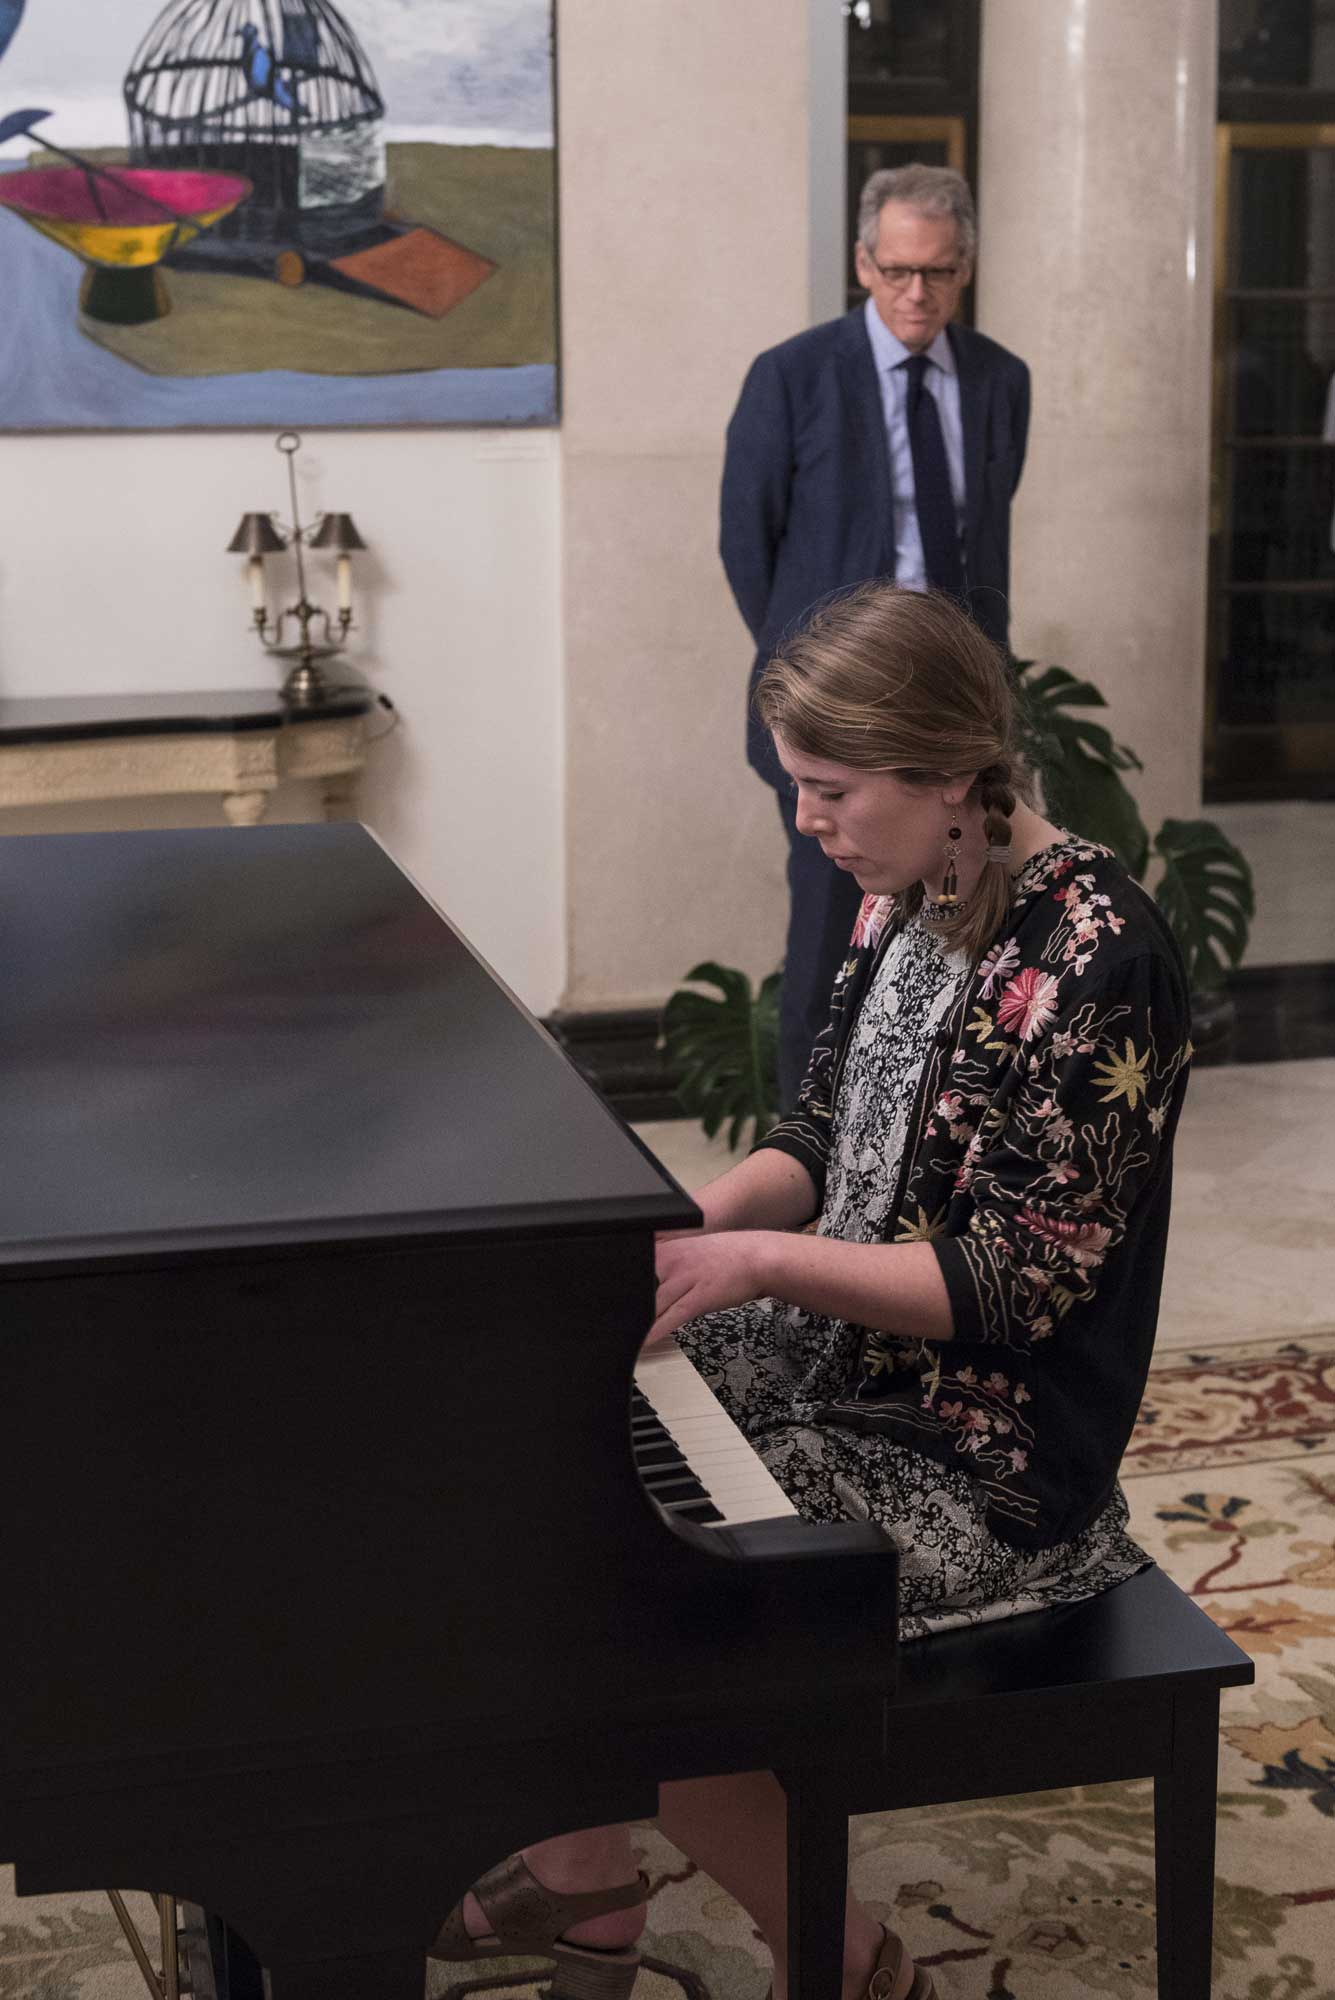 Molly Radosevich performs for Ambassador DeLaurentis